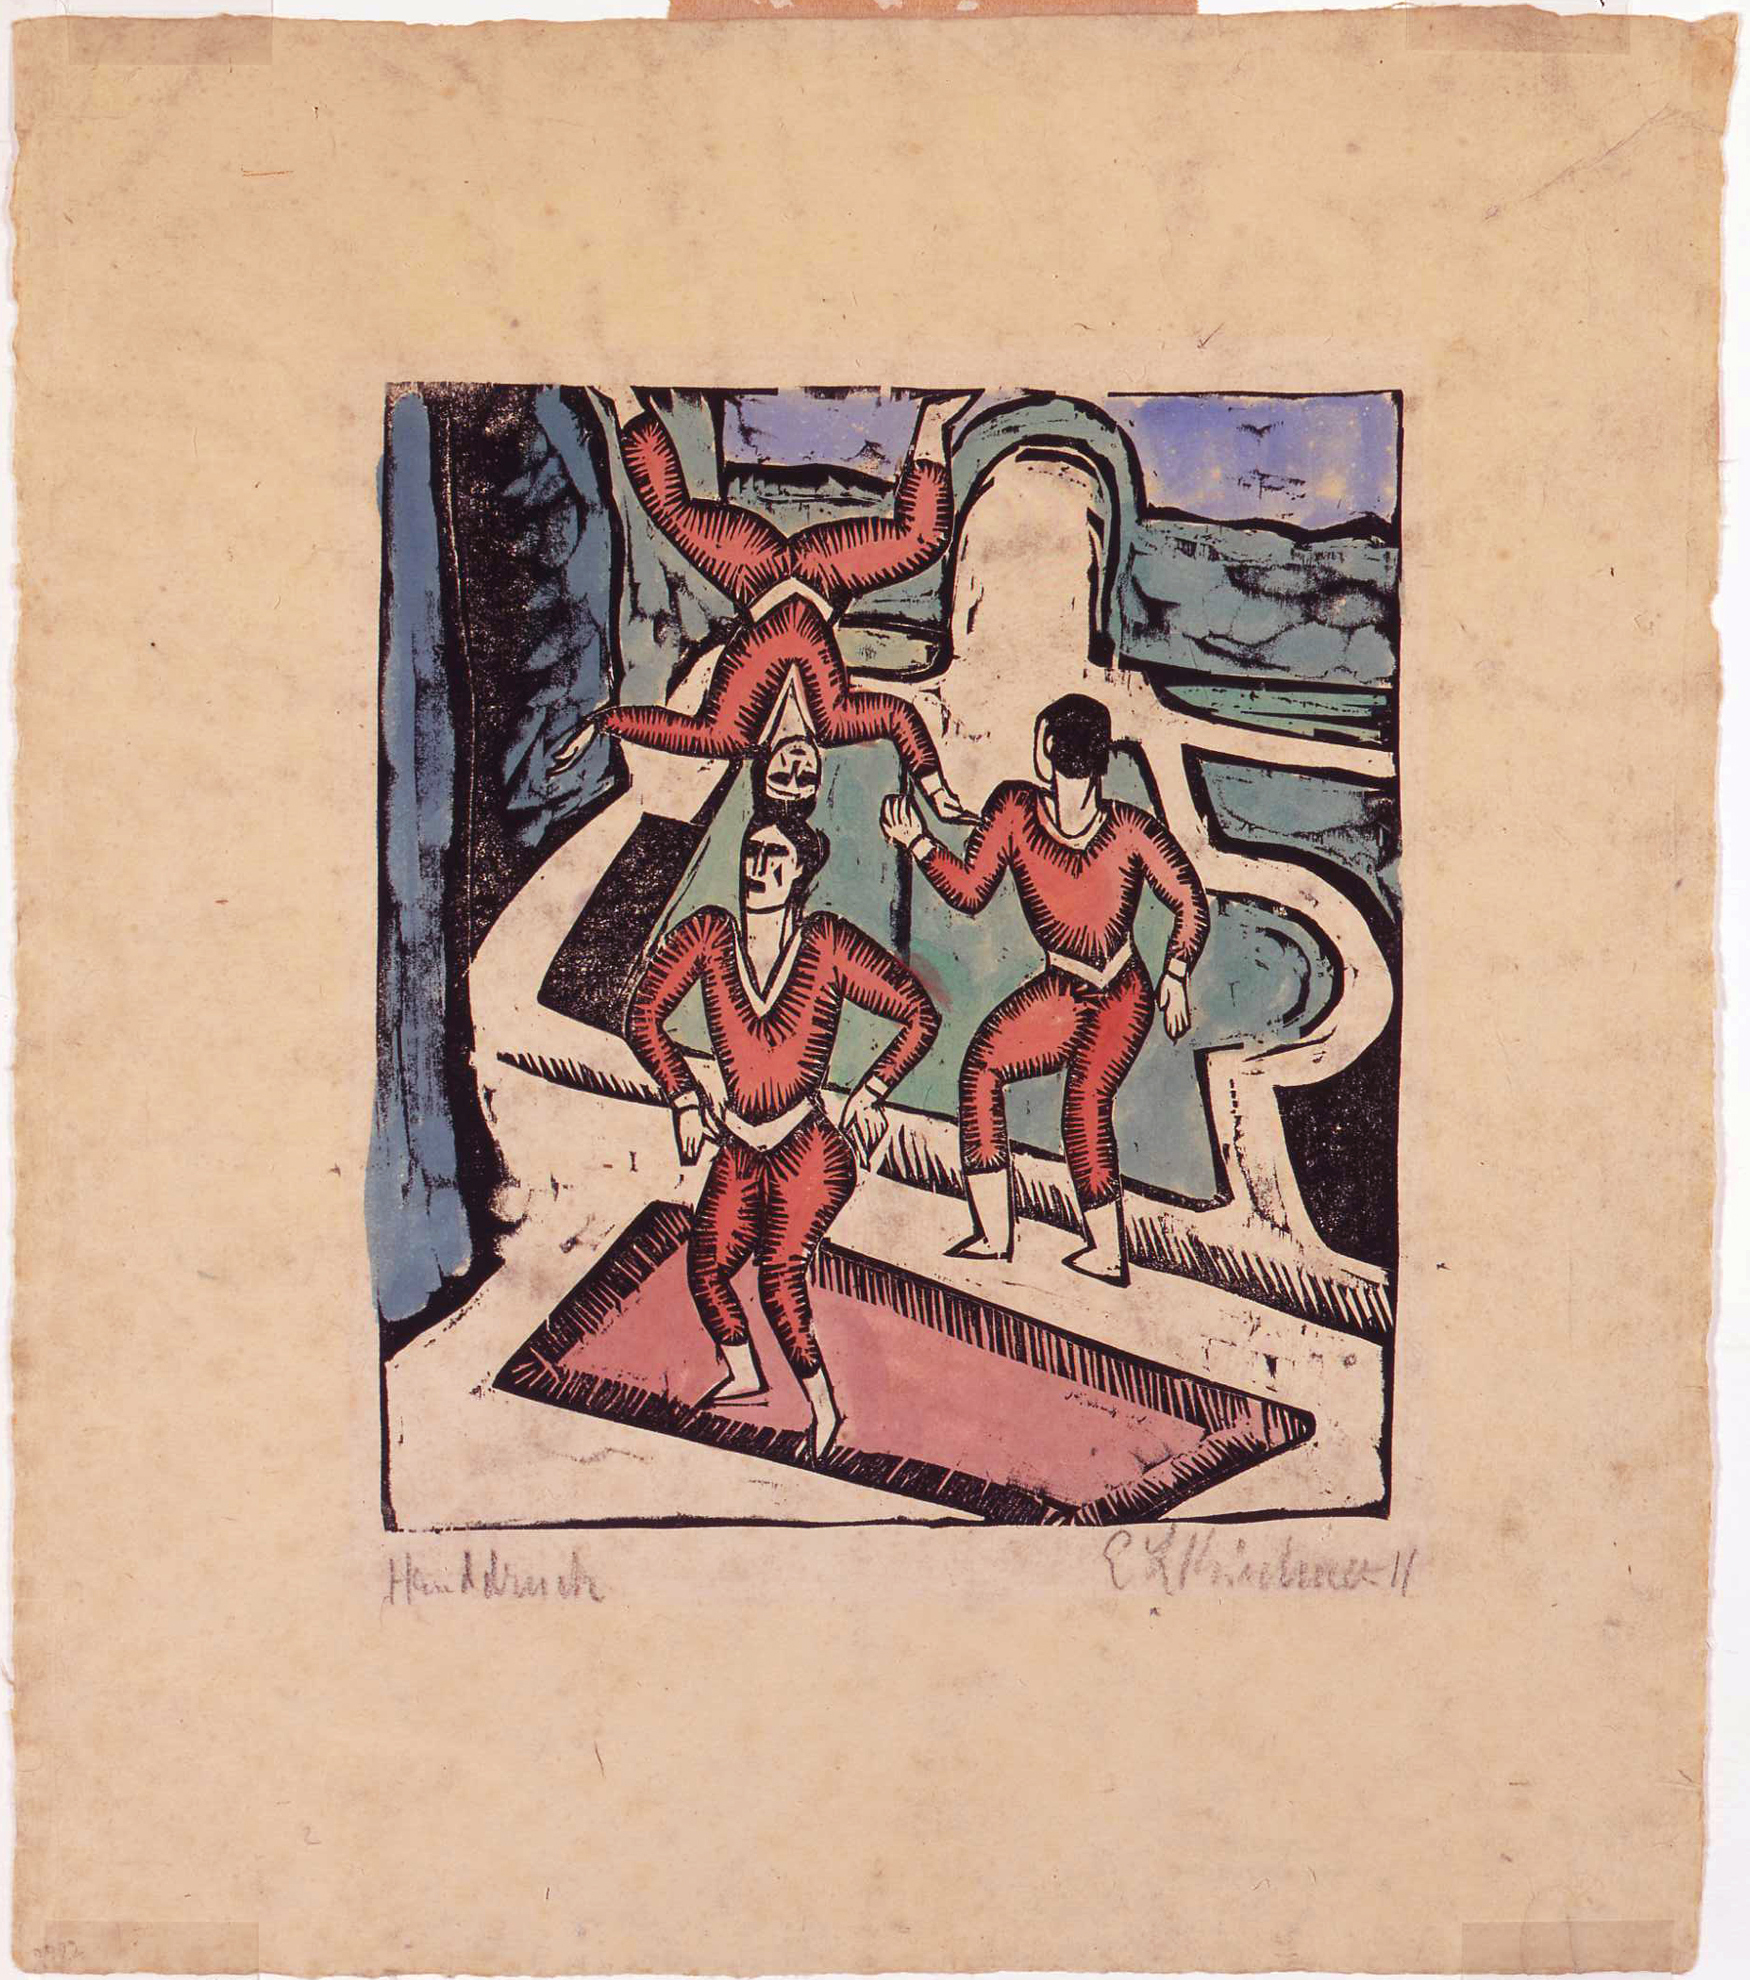 Ernst Ludwig Kirchner, Japanese Acrobats (1911) Photograph ©2020 courtesy of The David and Alfred Smart Museum of Art, The University of Chicago